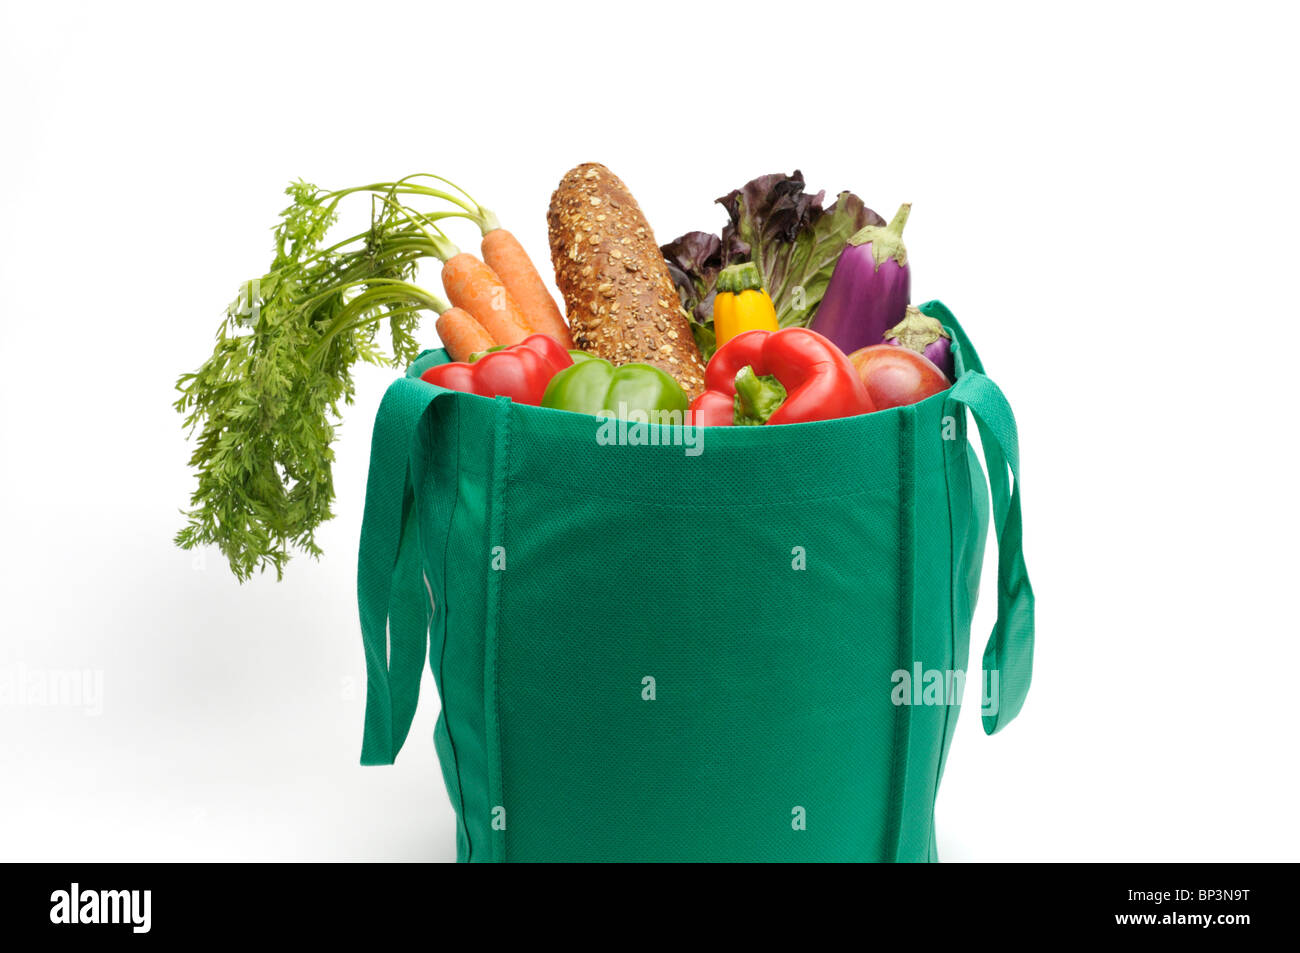 Eco-friendly reusable bag with fresh fruit and vegetables. - Stock Image